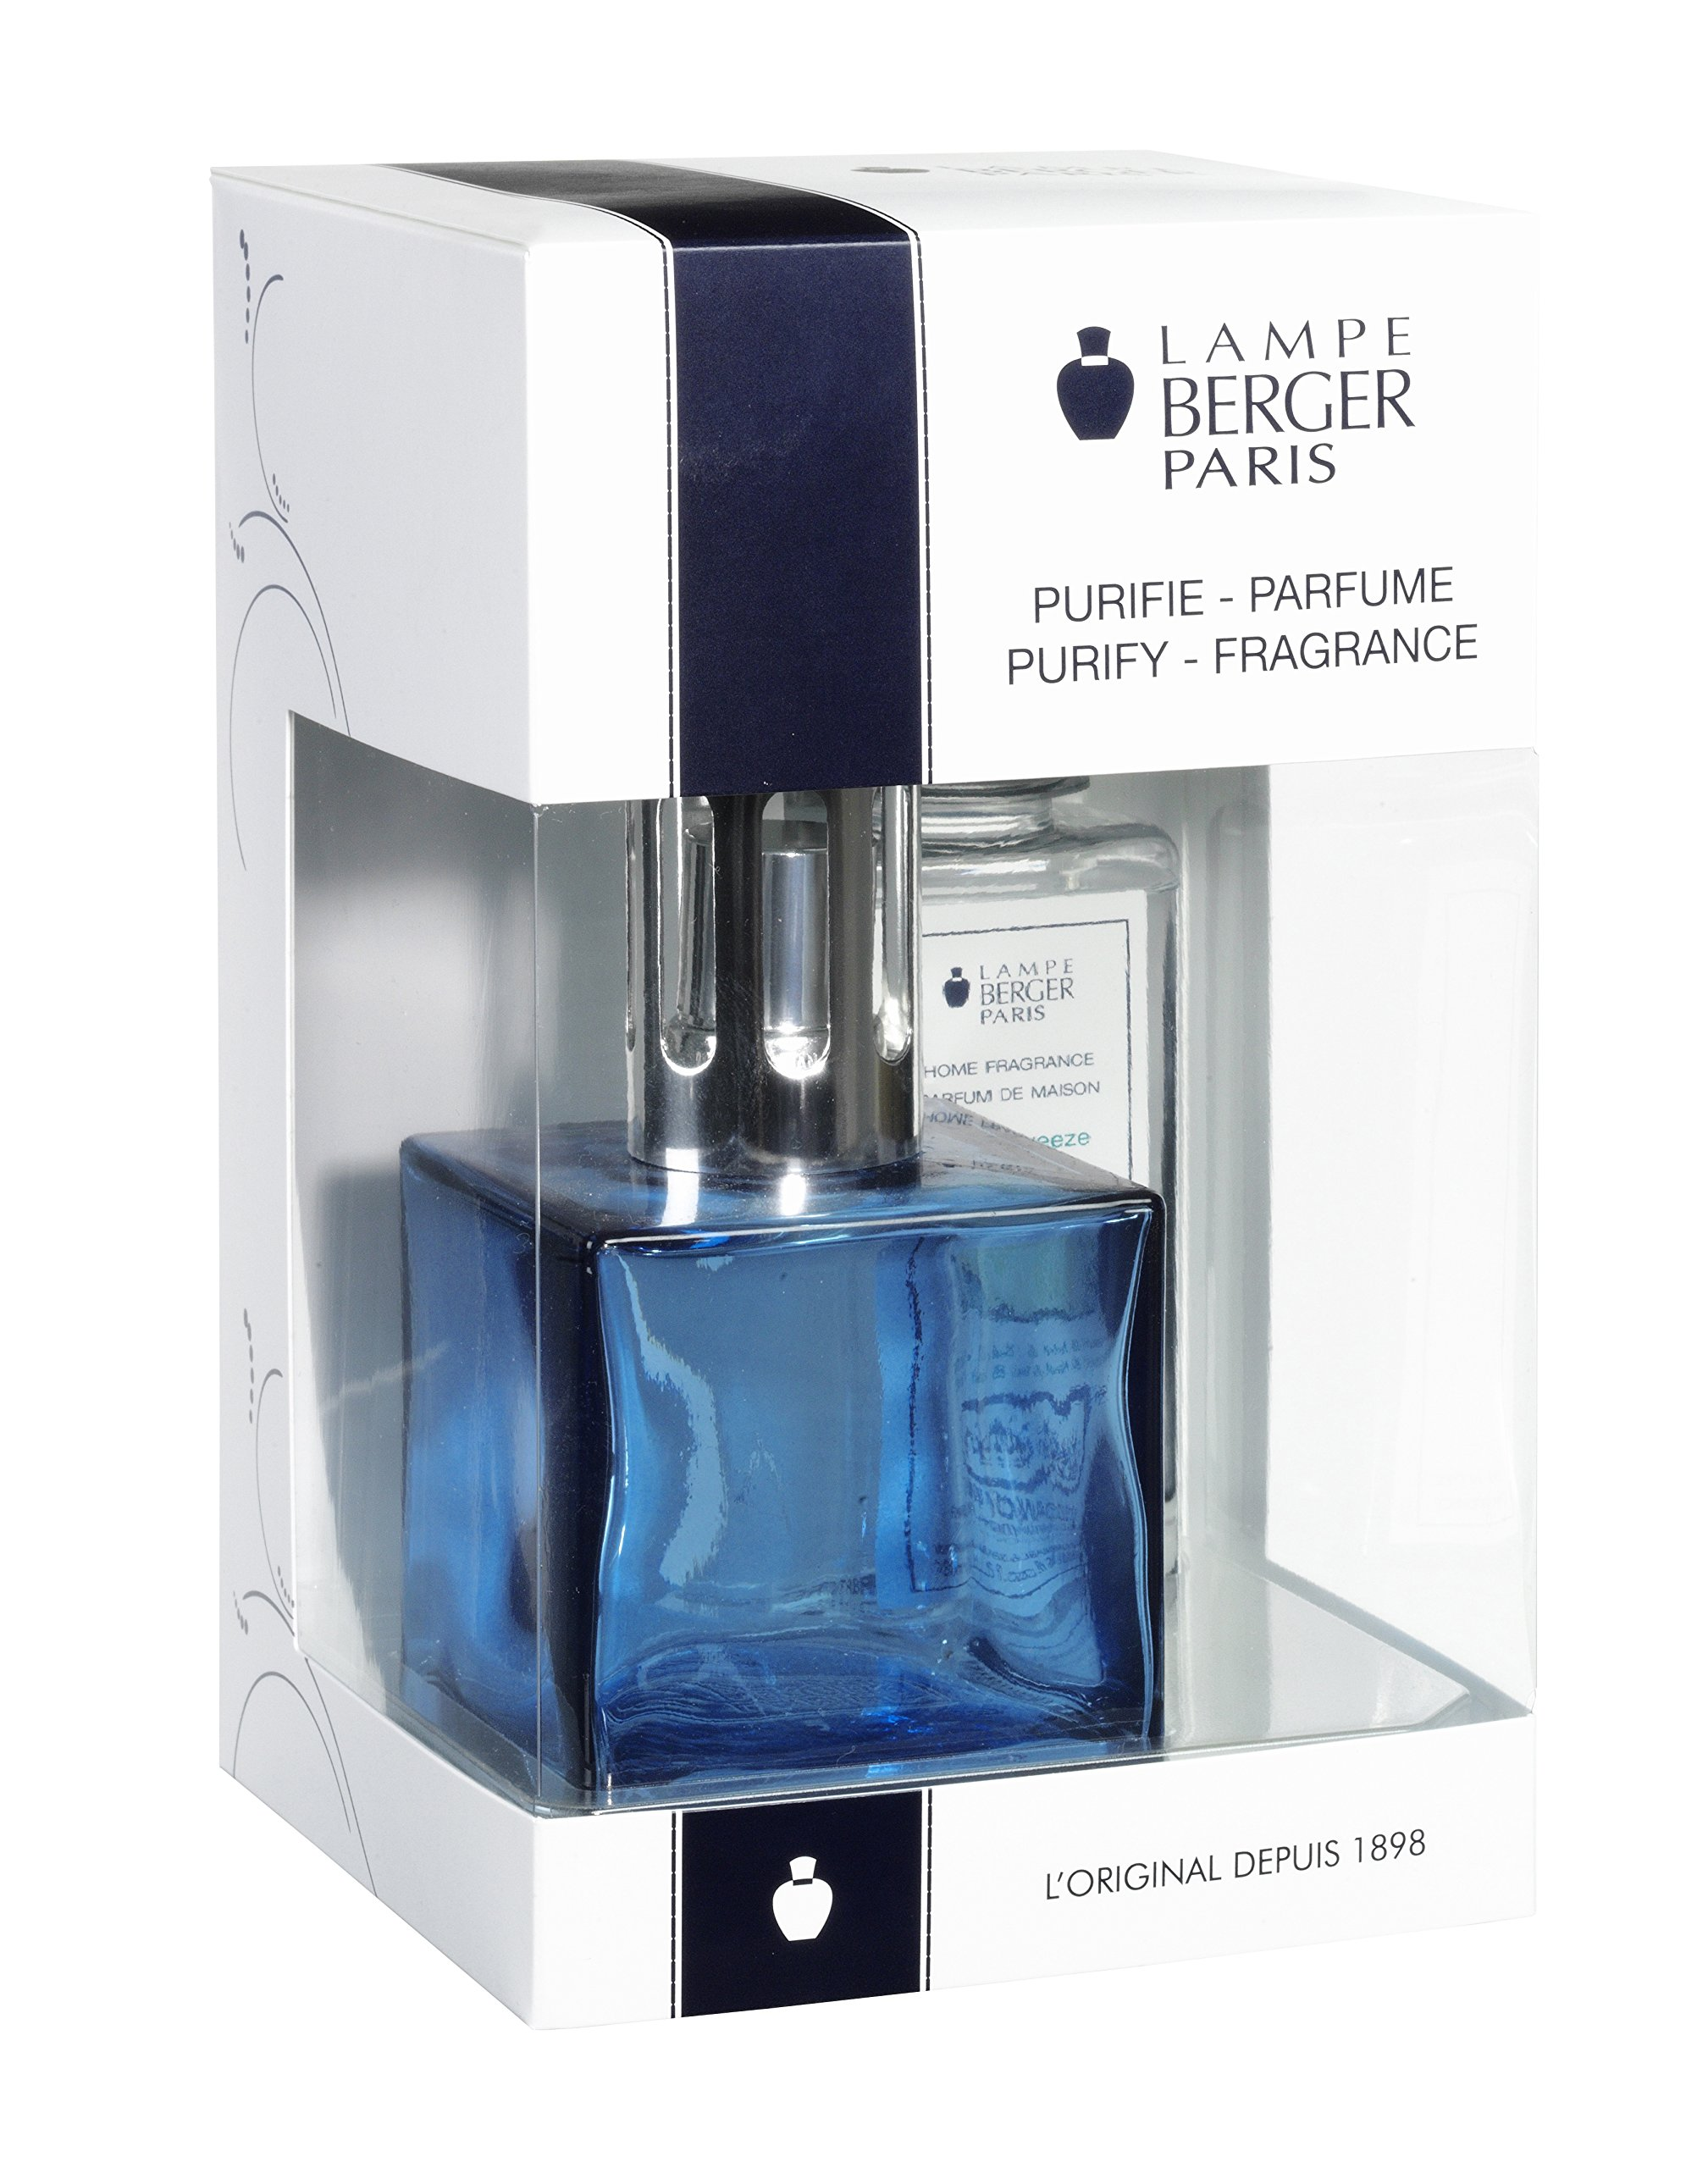 Lampe Berger Giftset Lamp Gift Set-Cube Blue, Includes Fragrance Ocean Breeze 180ml / 6.08 fl.oz by Lampe Berger (Image #1)